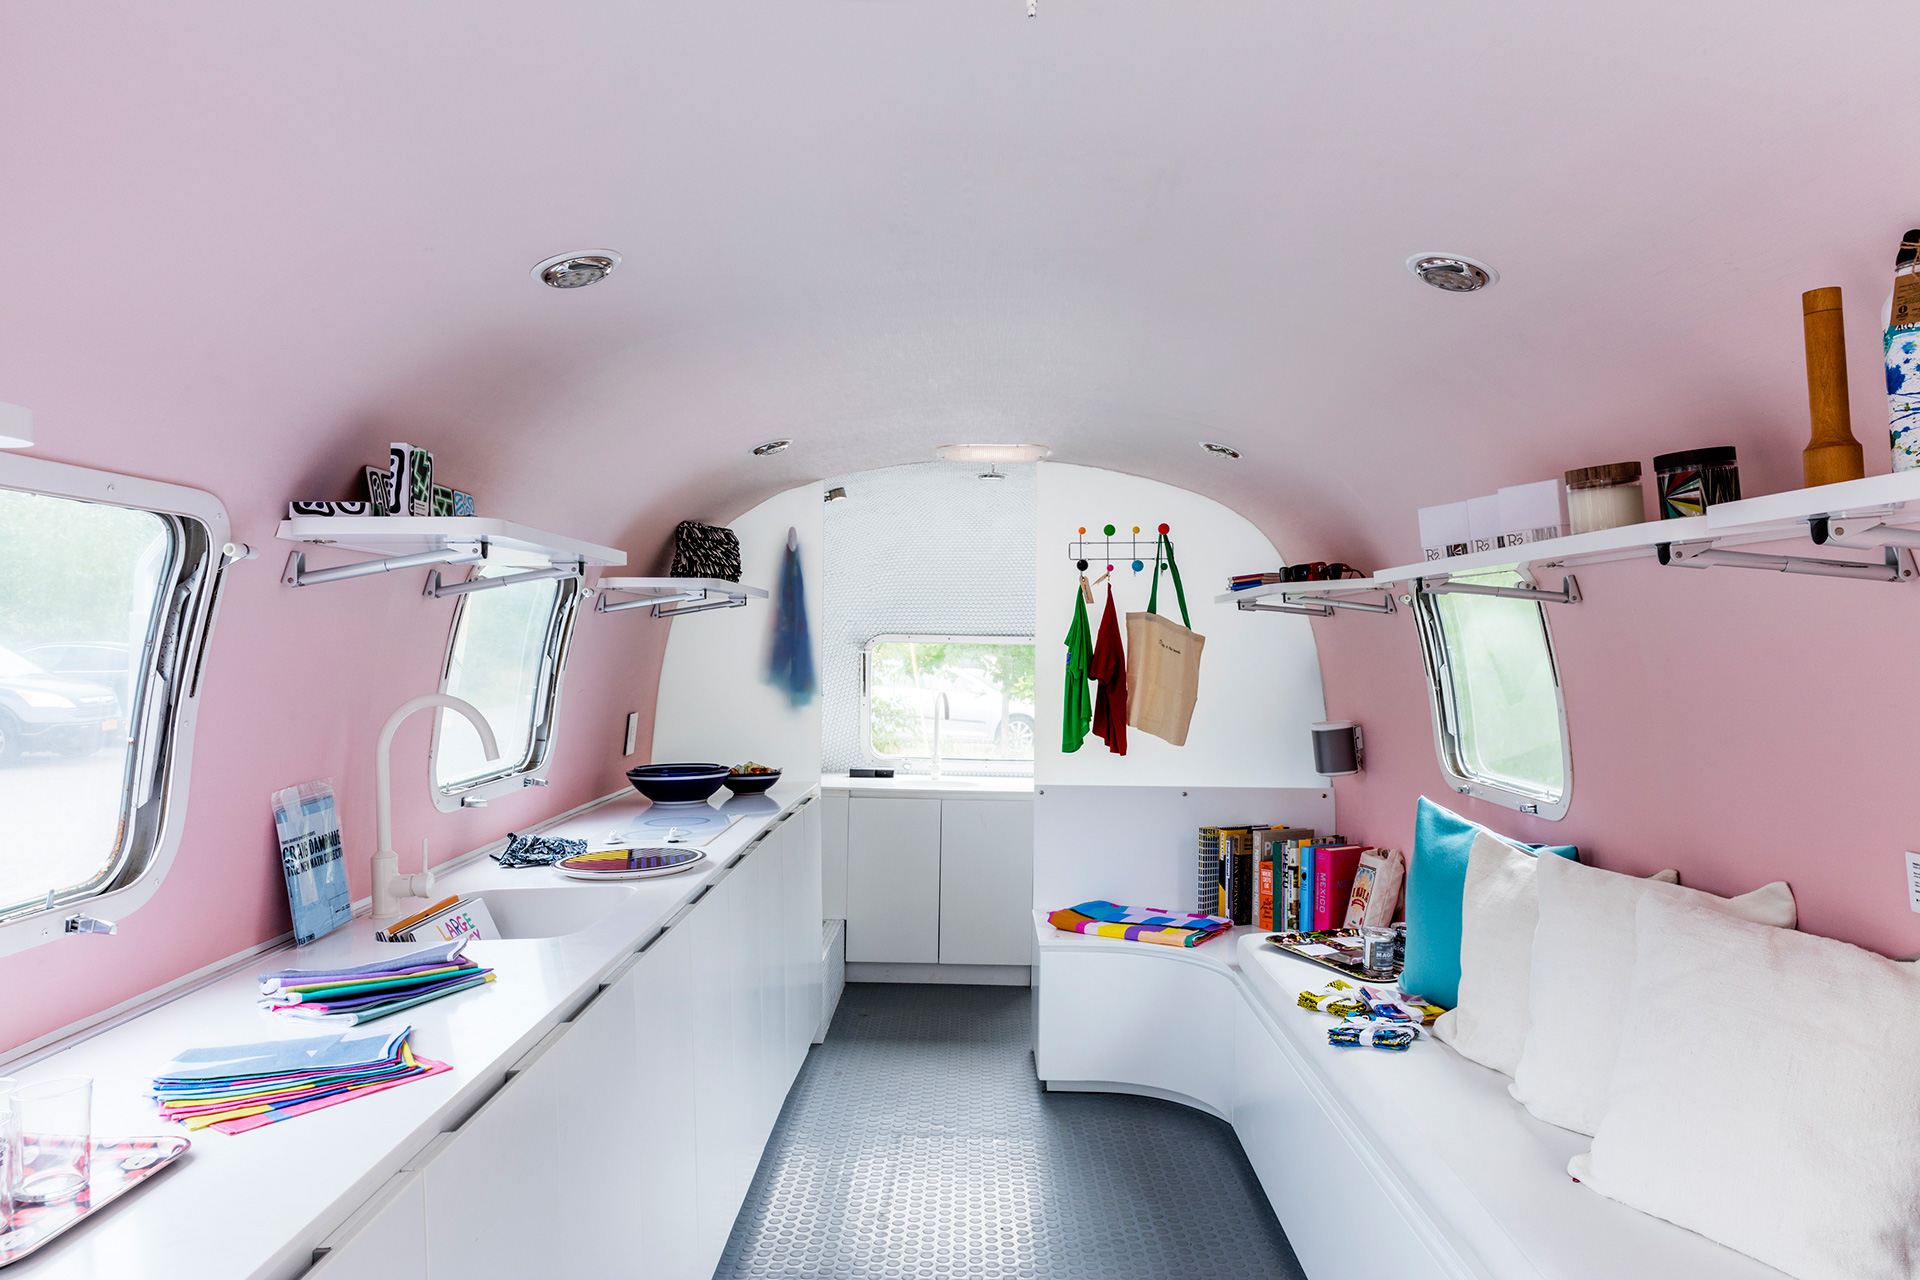 The Dream Machine, an Airstream-turned-pop-up shop for weR2 Studio| Reddymade: Architecture and Design| Suchi Reddy| STIR